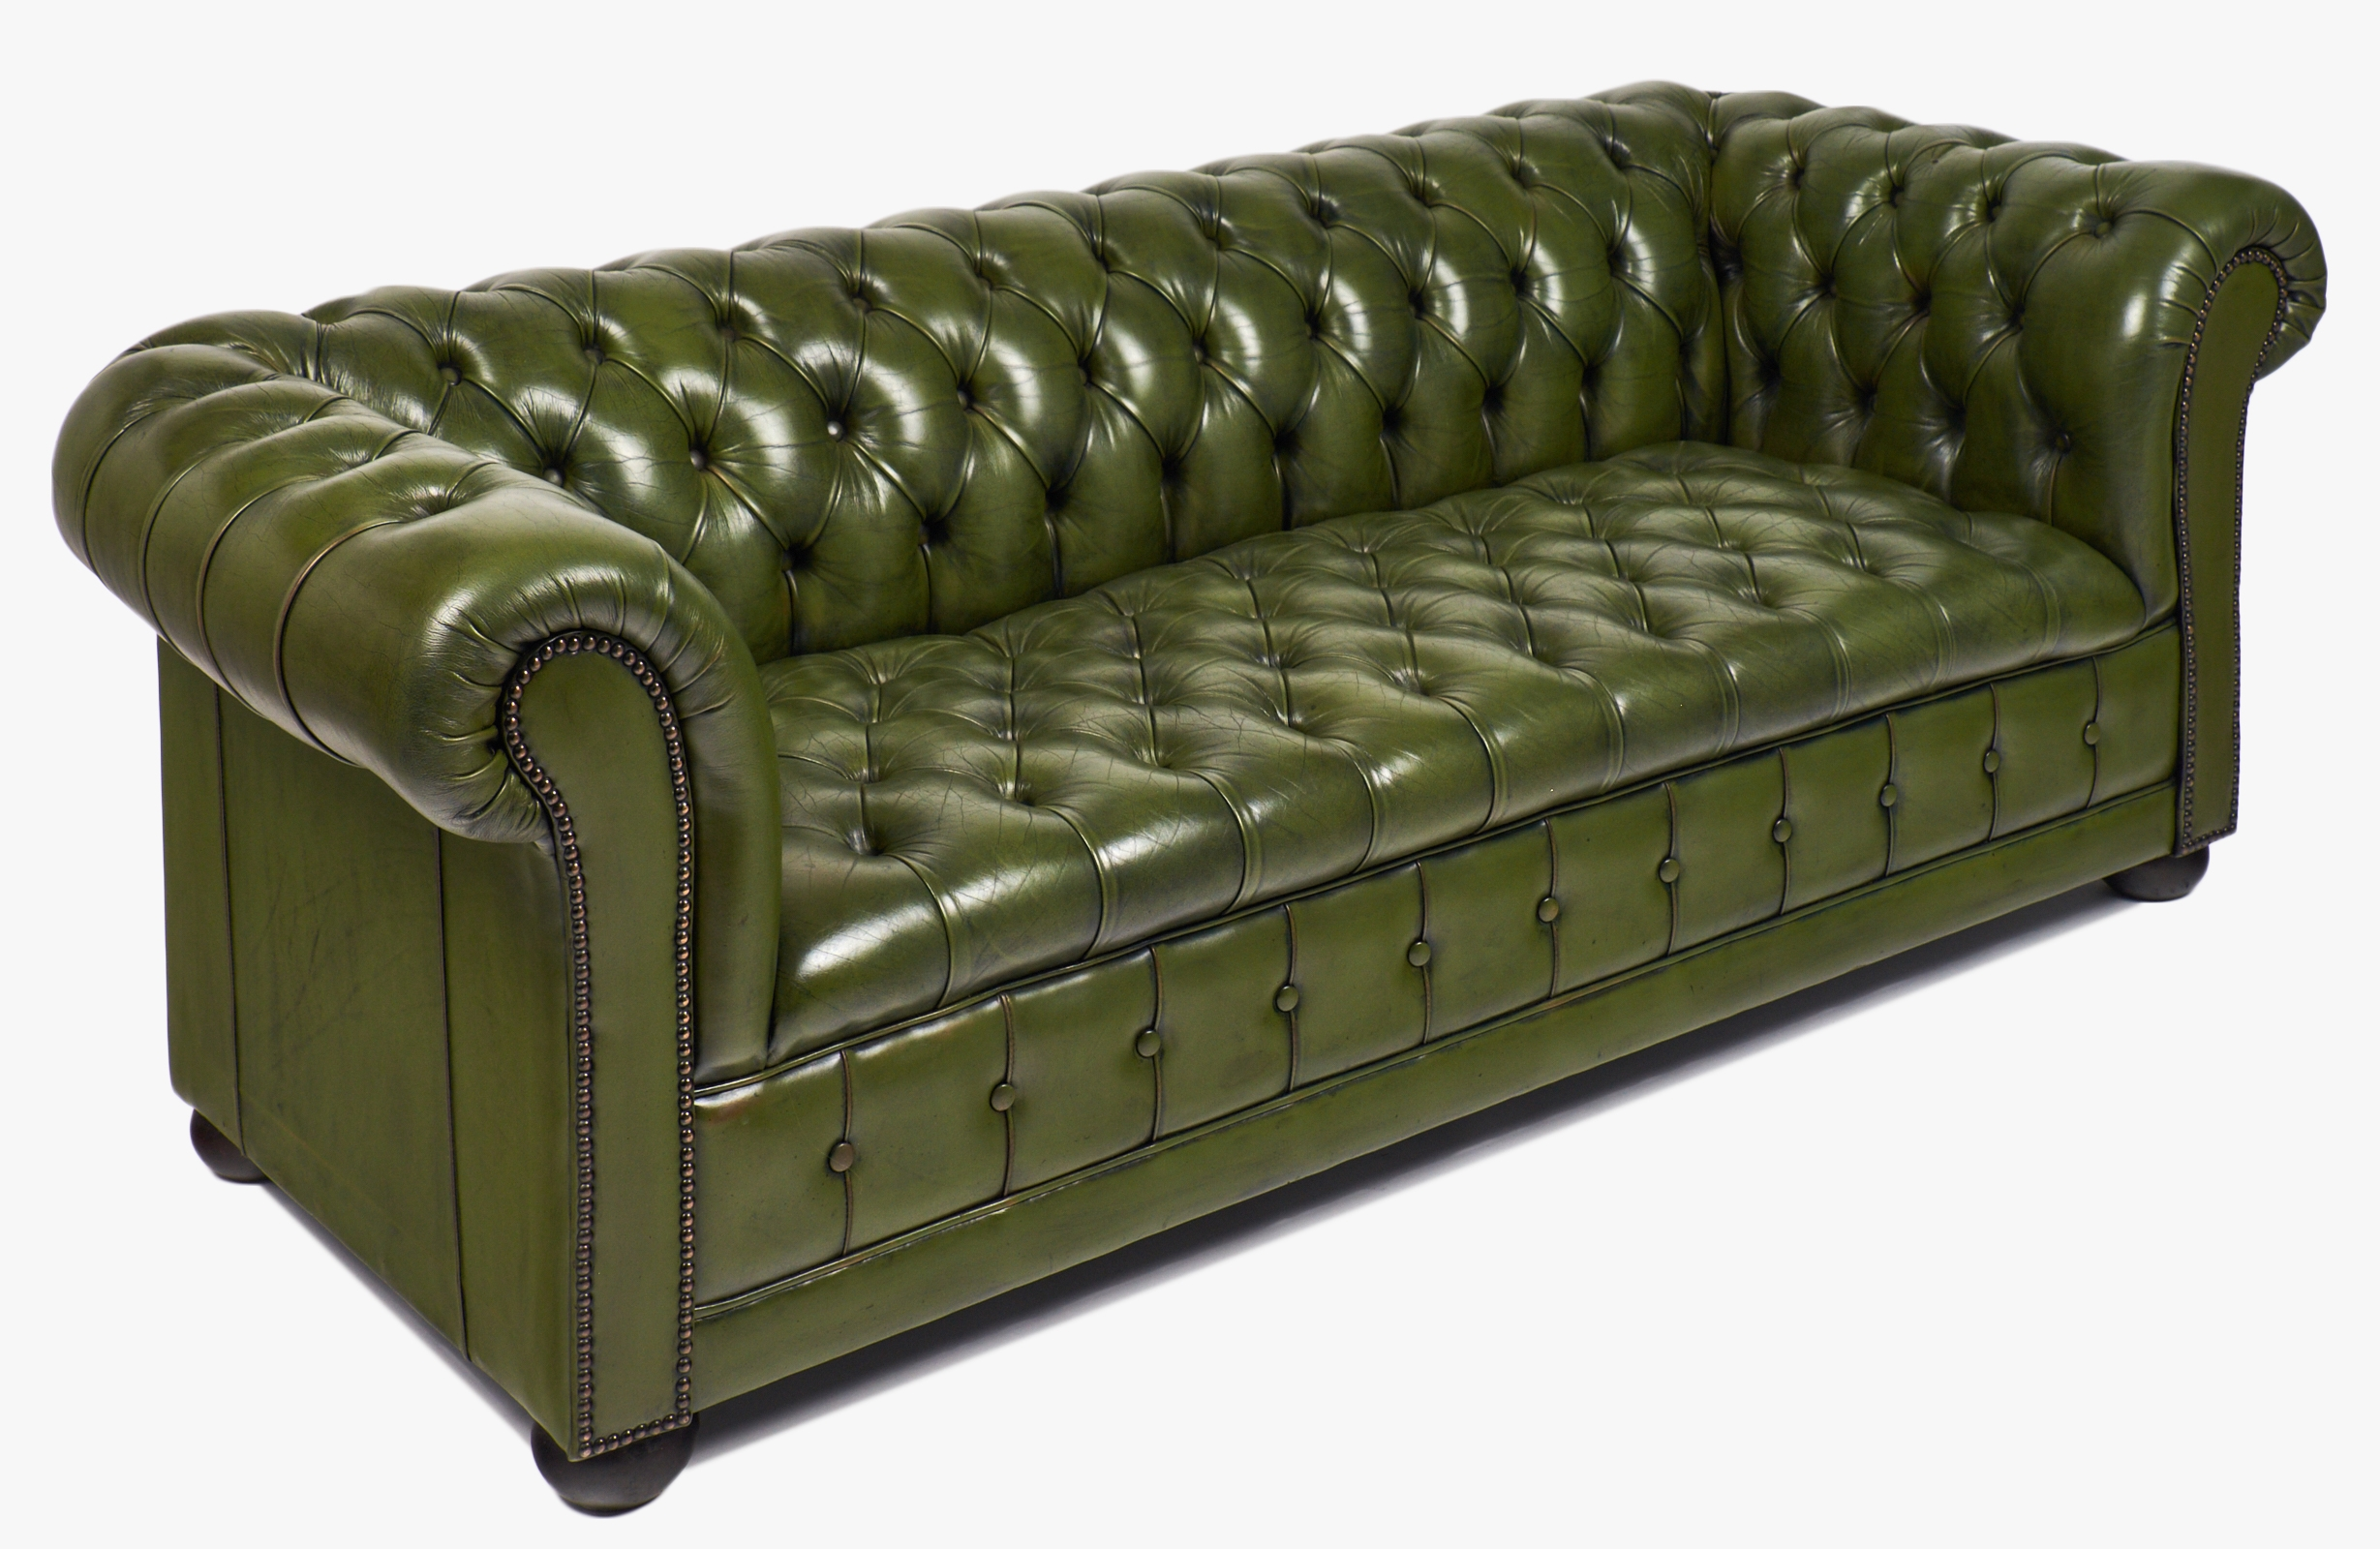 Vintage Green Leather Chesterfield Sofa Jean Marc Fray With Vintage Chesterfield Sofas (Image 15 of 15)